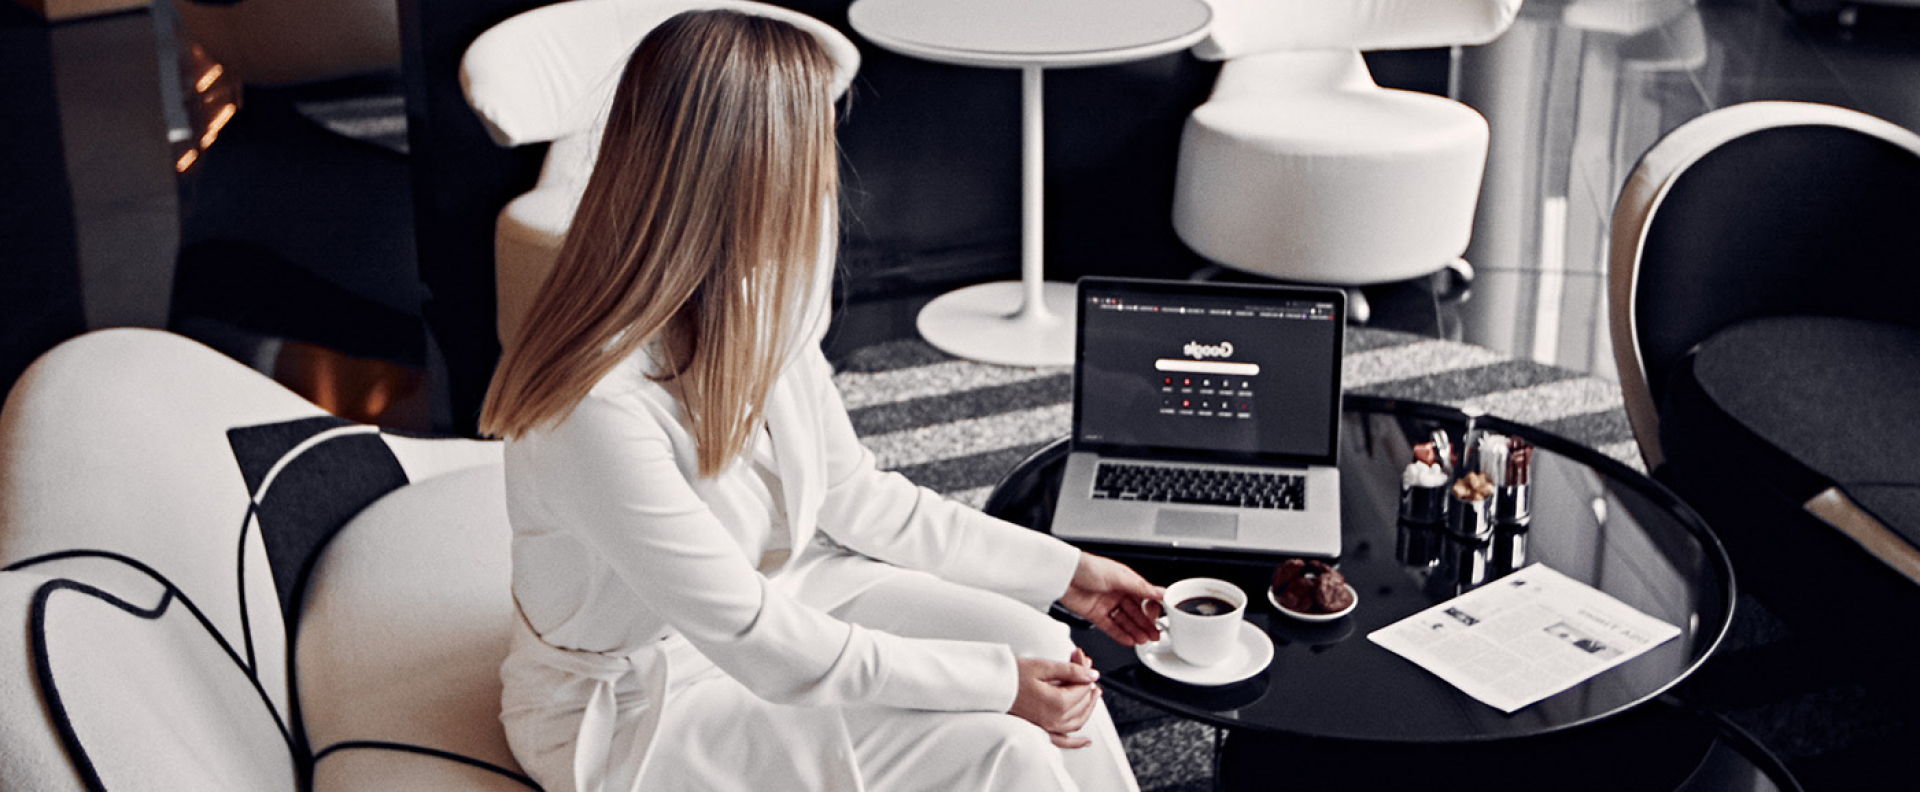 Female executive sitting at coffee table in a modern office